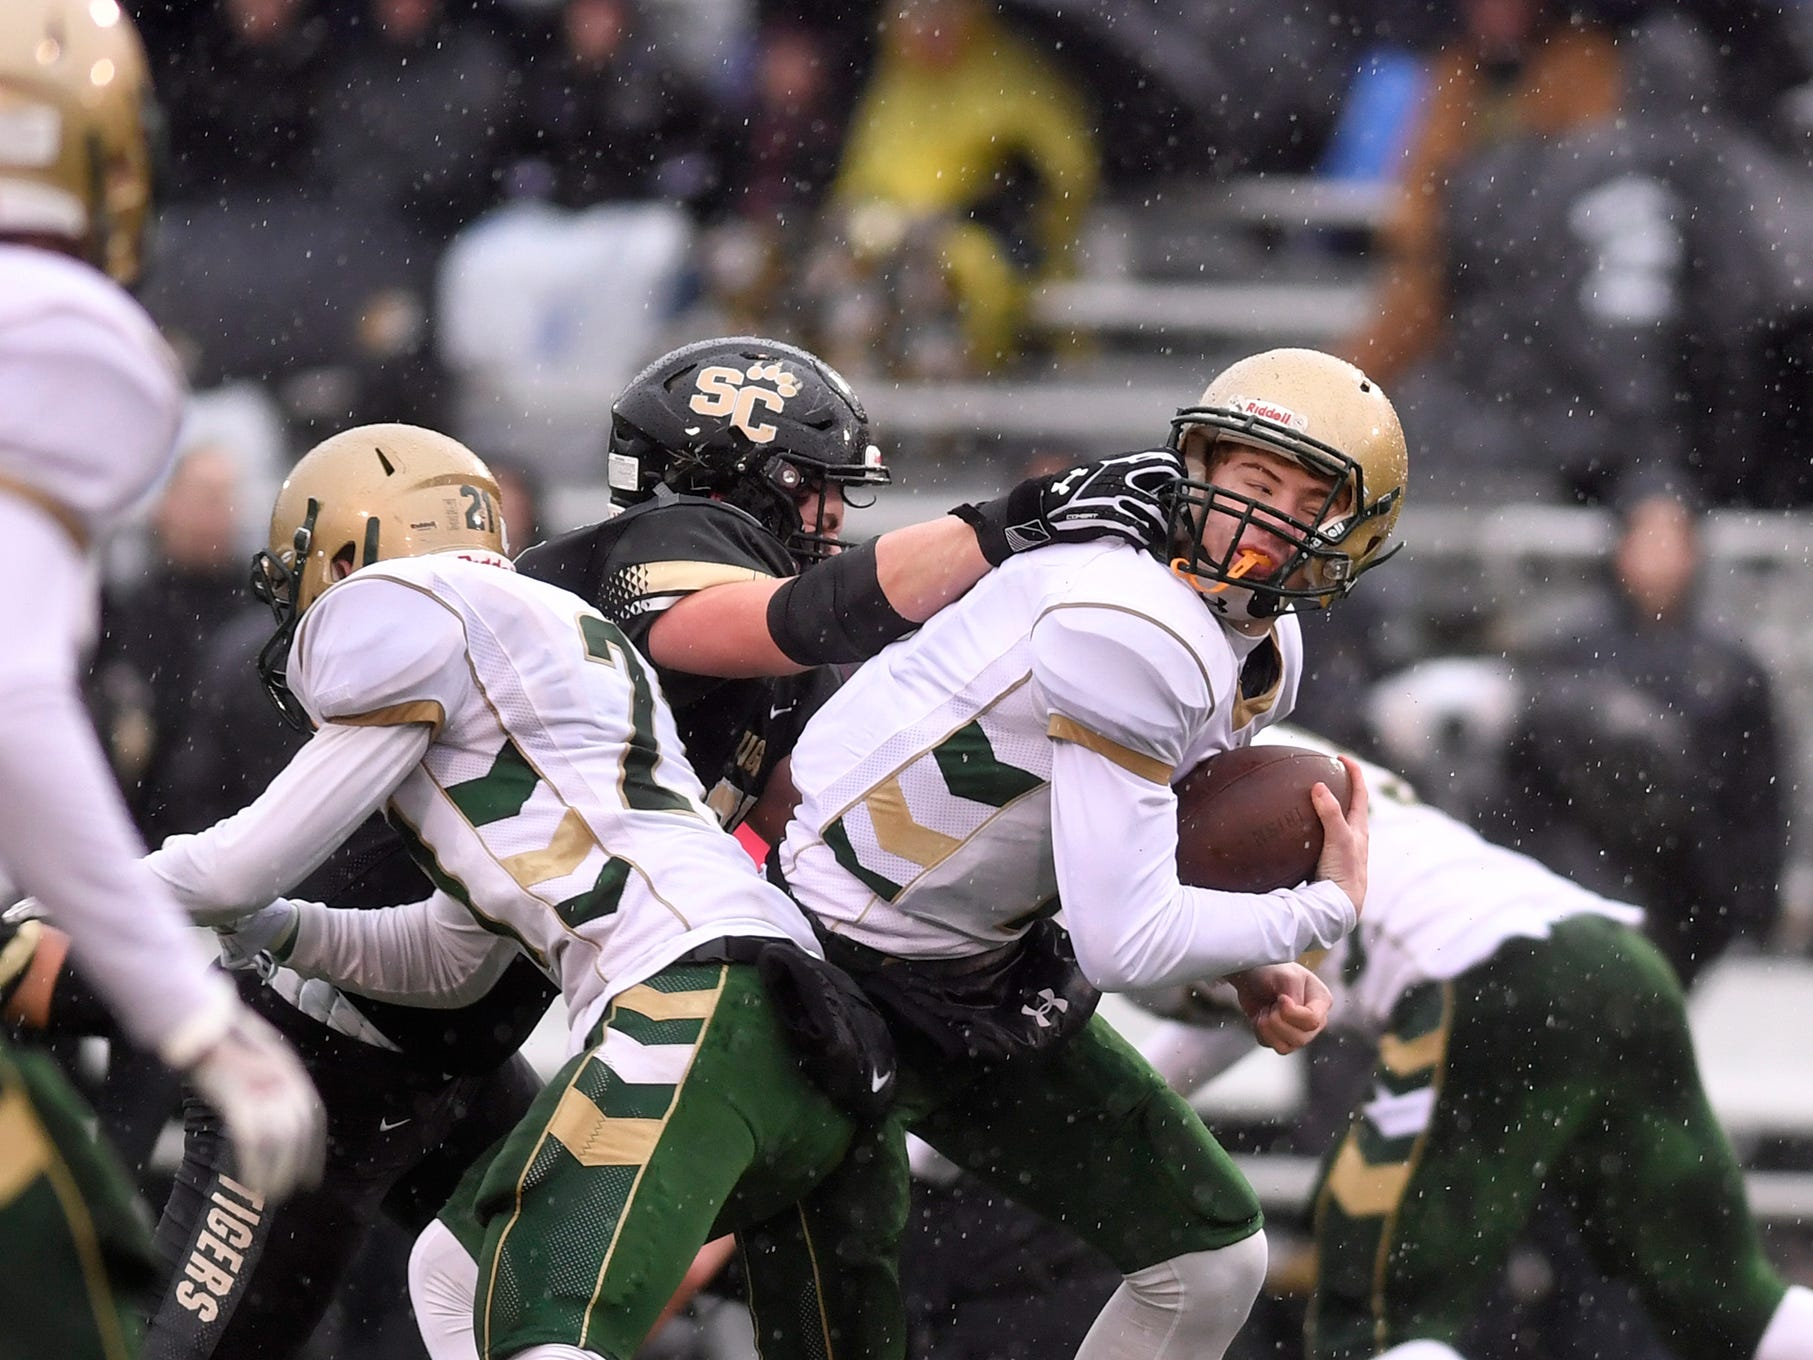 York Catholic quarterback Mitchell Galentine is facemasked by Payton Pursel of Southern Columbia during the PIAA Class 2-A quarterfinal football game in Shamokin, Saturday, November 24, 2018. John A. Pavoncello photo